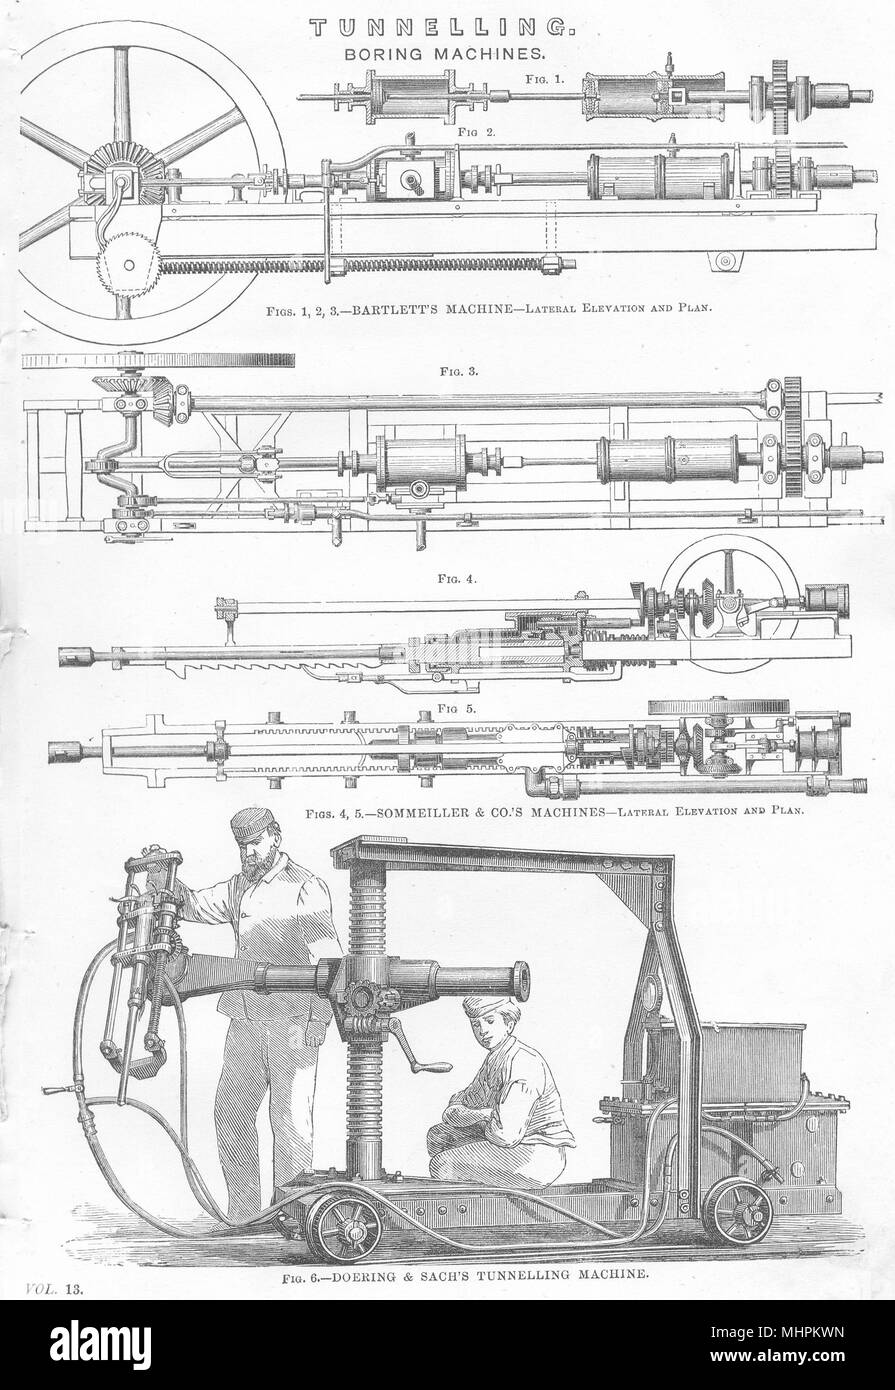 TUNNELLING. Boring Machines. Bartlett; Sommeiller; Doering & Sachs.  1880 - Stock Image